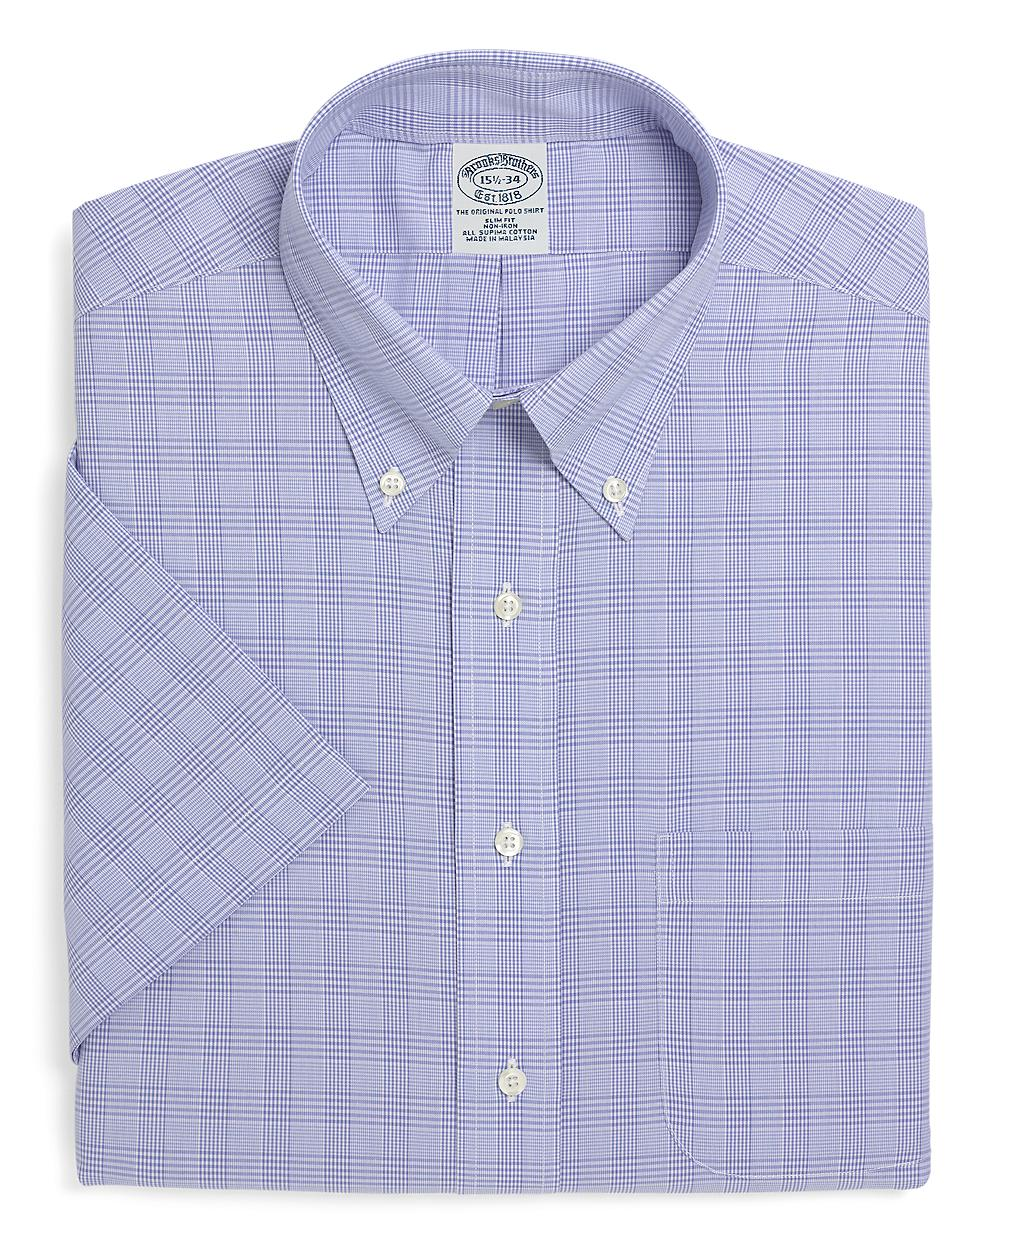 Brooks brothers supima cotton noniron slim fit shortsleeve for Brooks brothers dress shirt fit guide